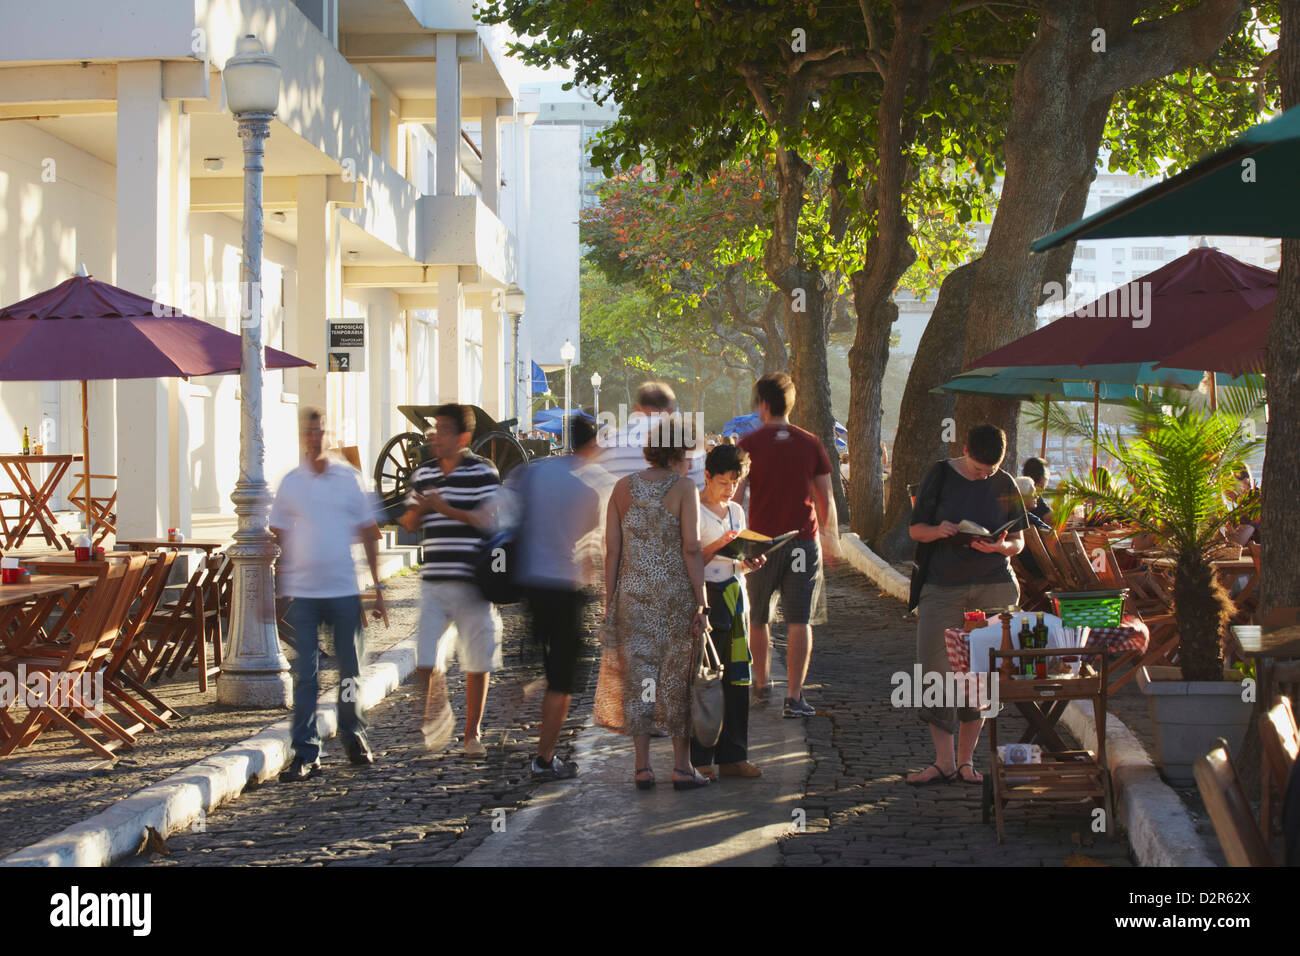 People walking past cafes in the grounds of Forte de Copacabana (Copacabana Fort), Copacabana, Rio de Janeiro, Brazil - Stock Image